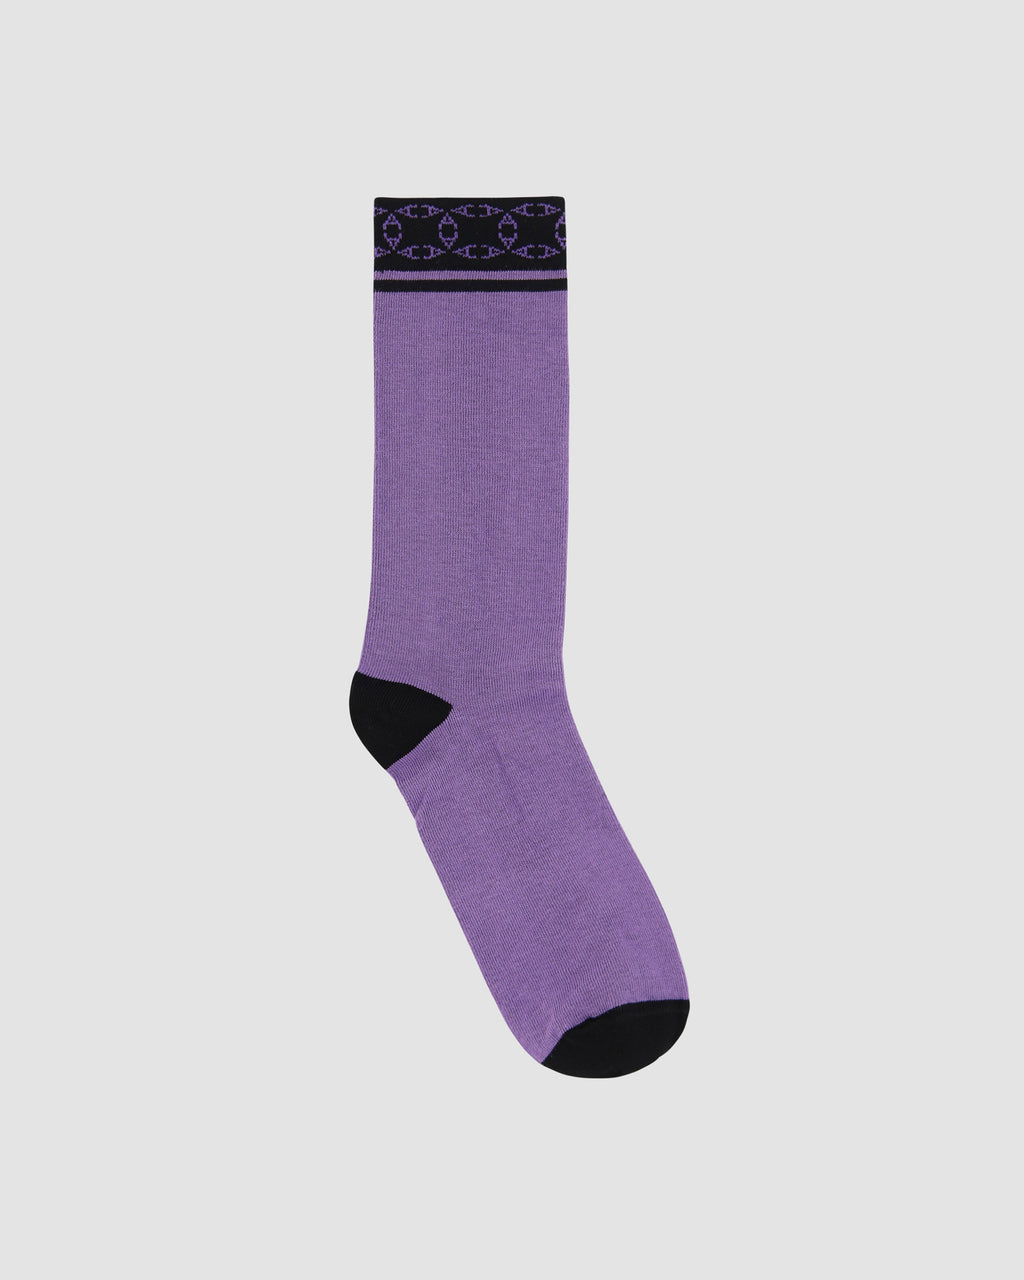 1017 ALYX 9SM | ALLOVER RIB SOCKS | Sock | Accessories, Google Shopping, Man, PURPLE, S20, Socks, SS20, UNISEX, Woman